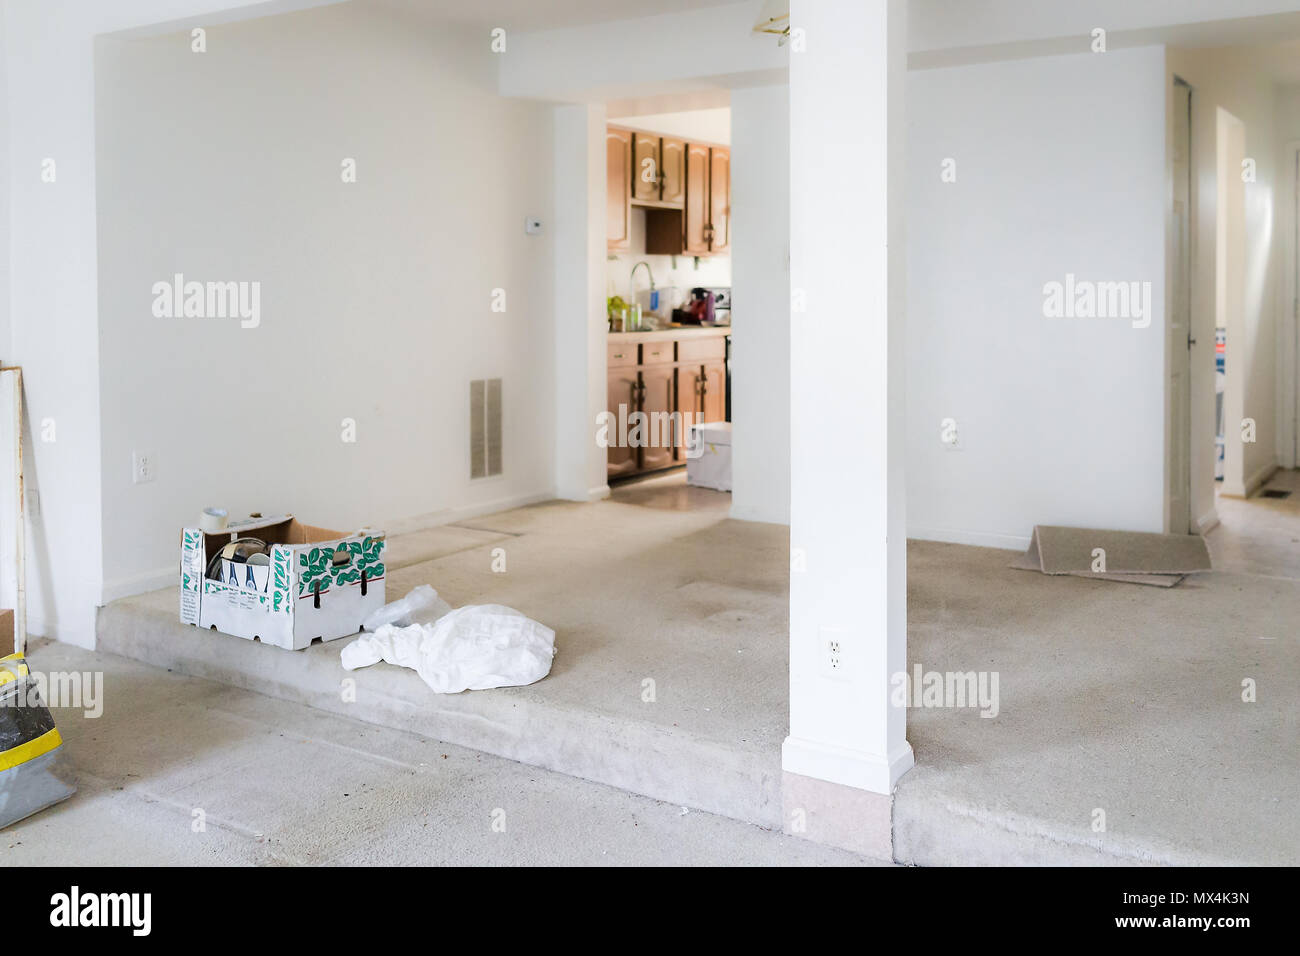 Empty dirty room with boxes and carpet during remodeling, renovation ...